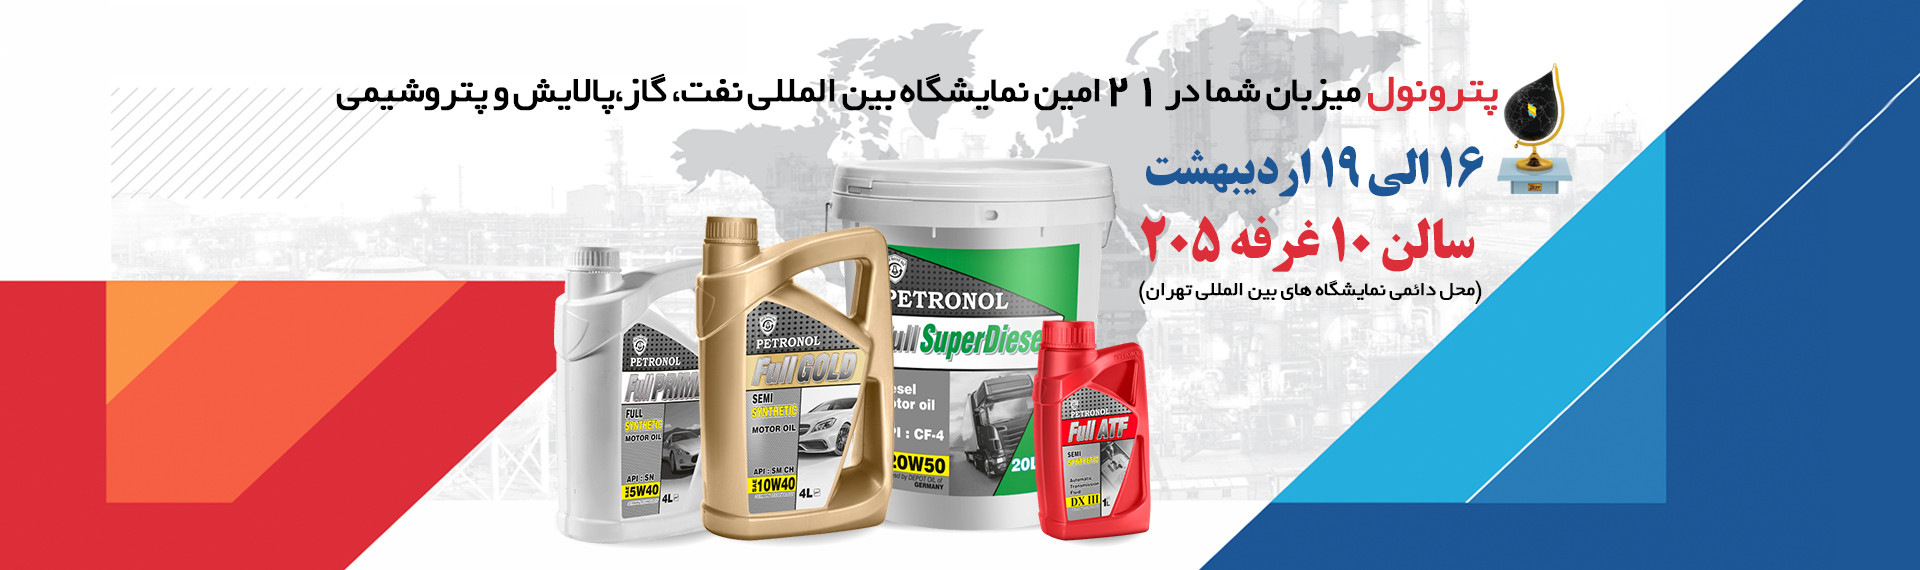 petronol-oil-iran-oil-gas-refining-petrochemical-exhibition